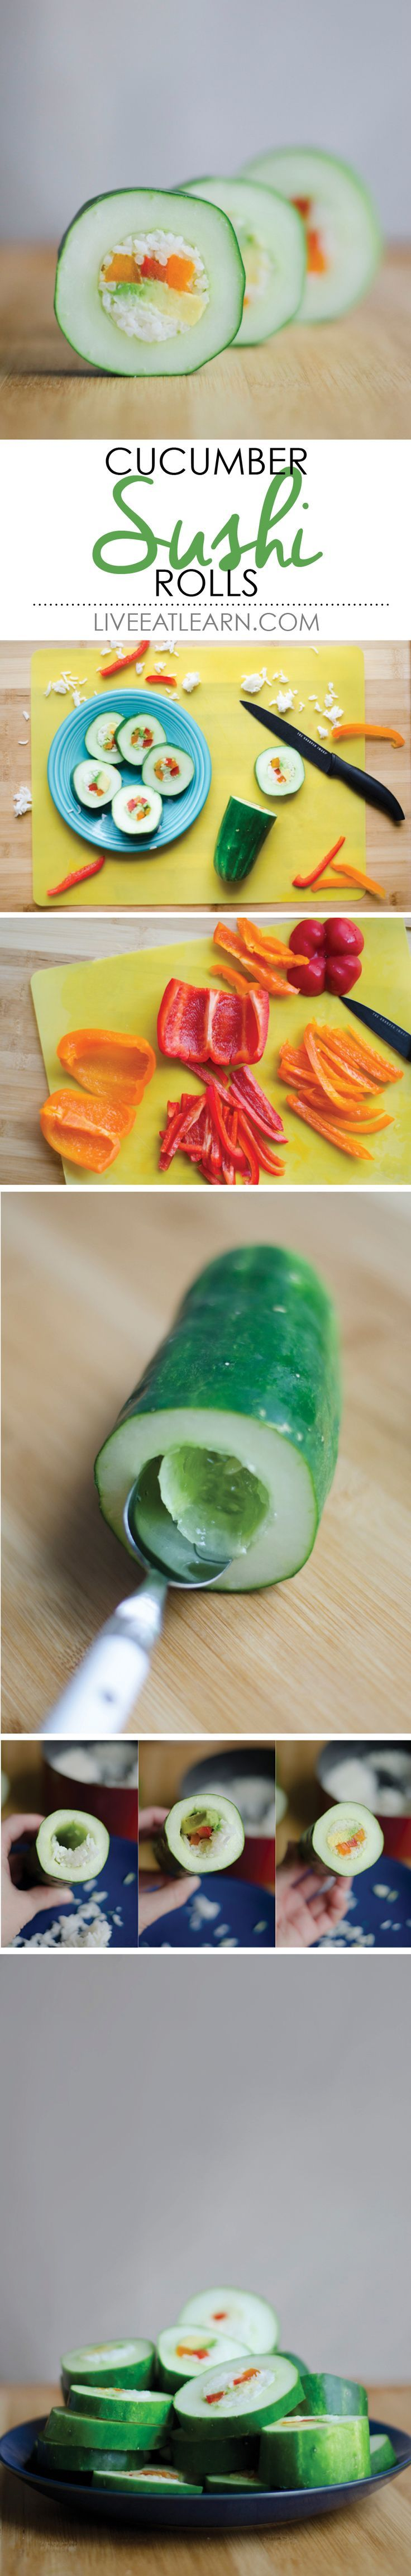 Who knew you could make refreshing and healthy sushi rolls using cucumber? // Live Eat Learn